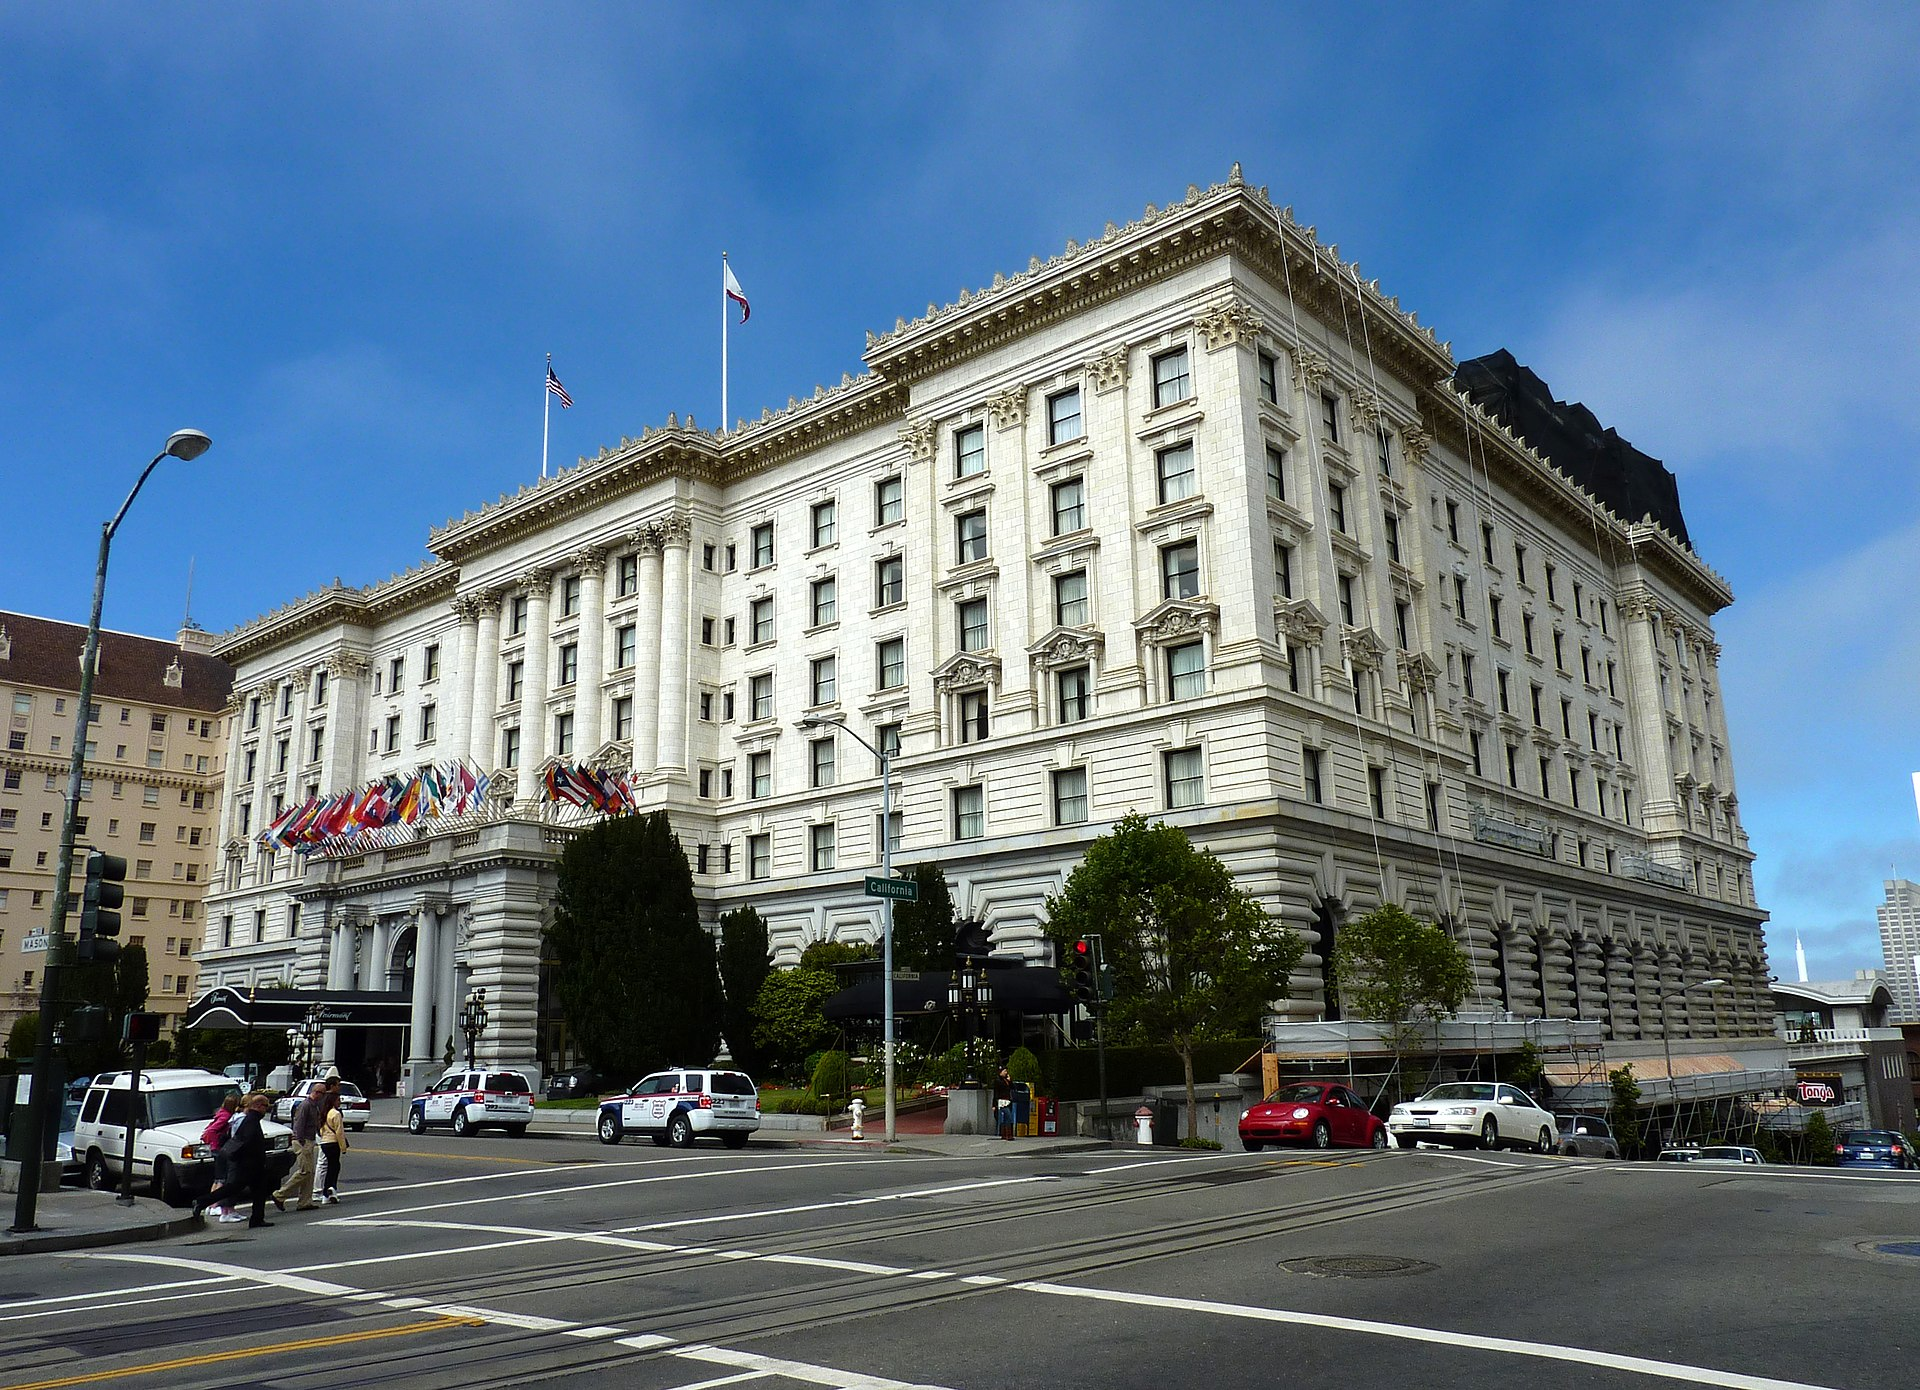 Fairmont Hotel in San Francisco, redesigned by Julia Morgan (1907)